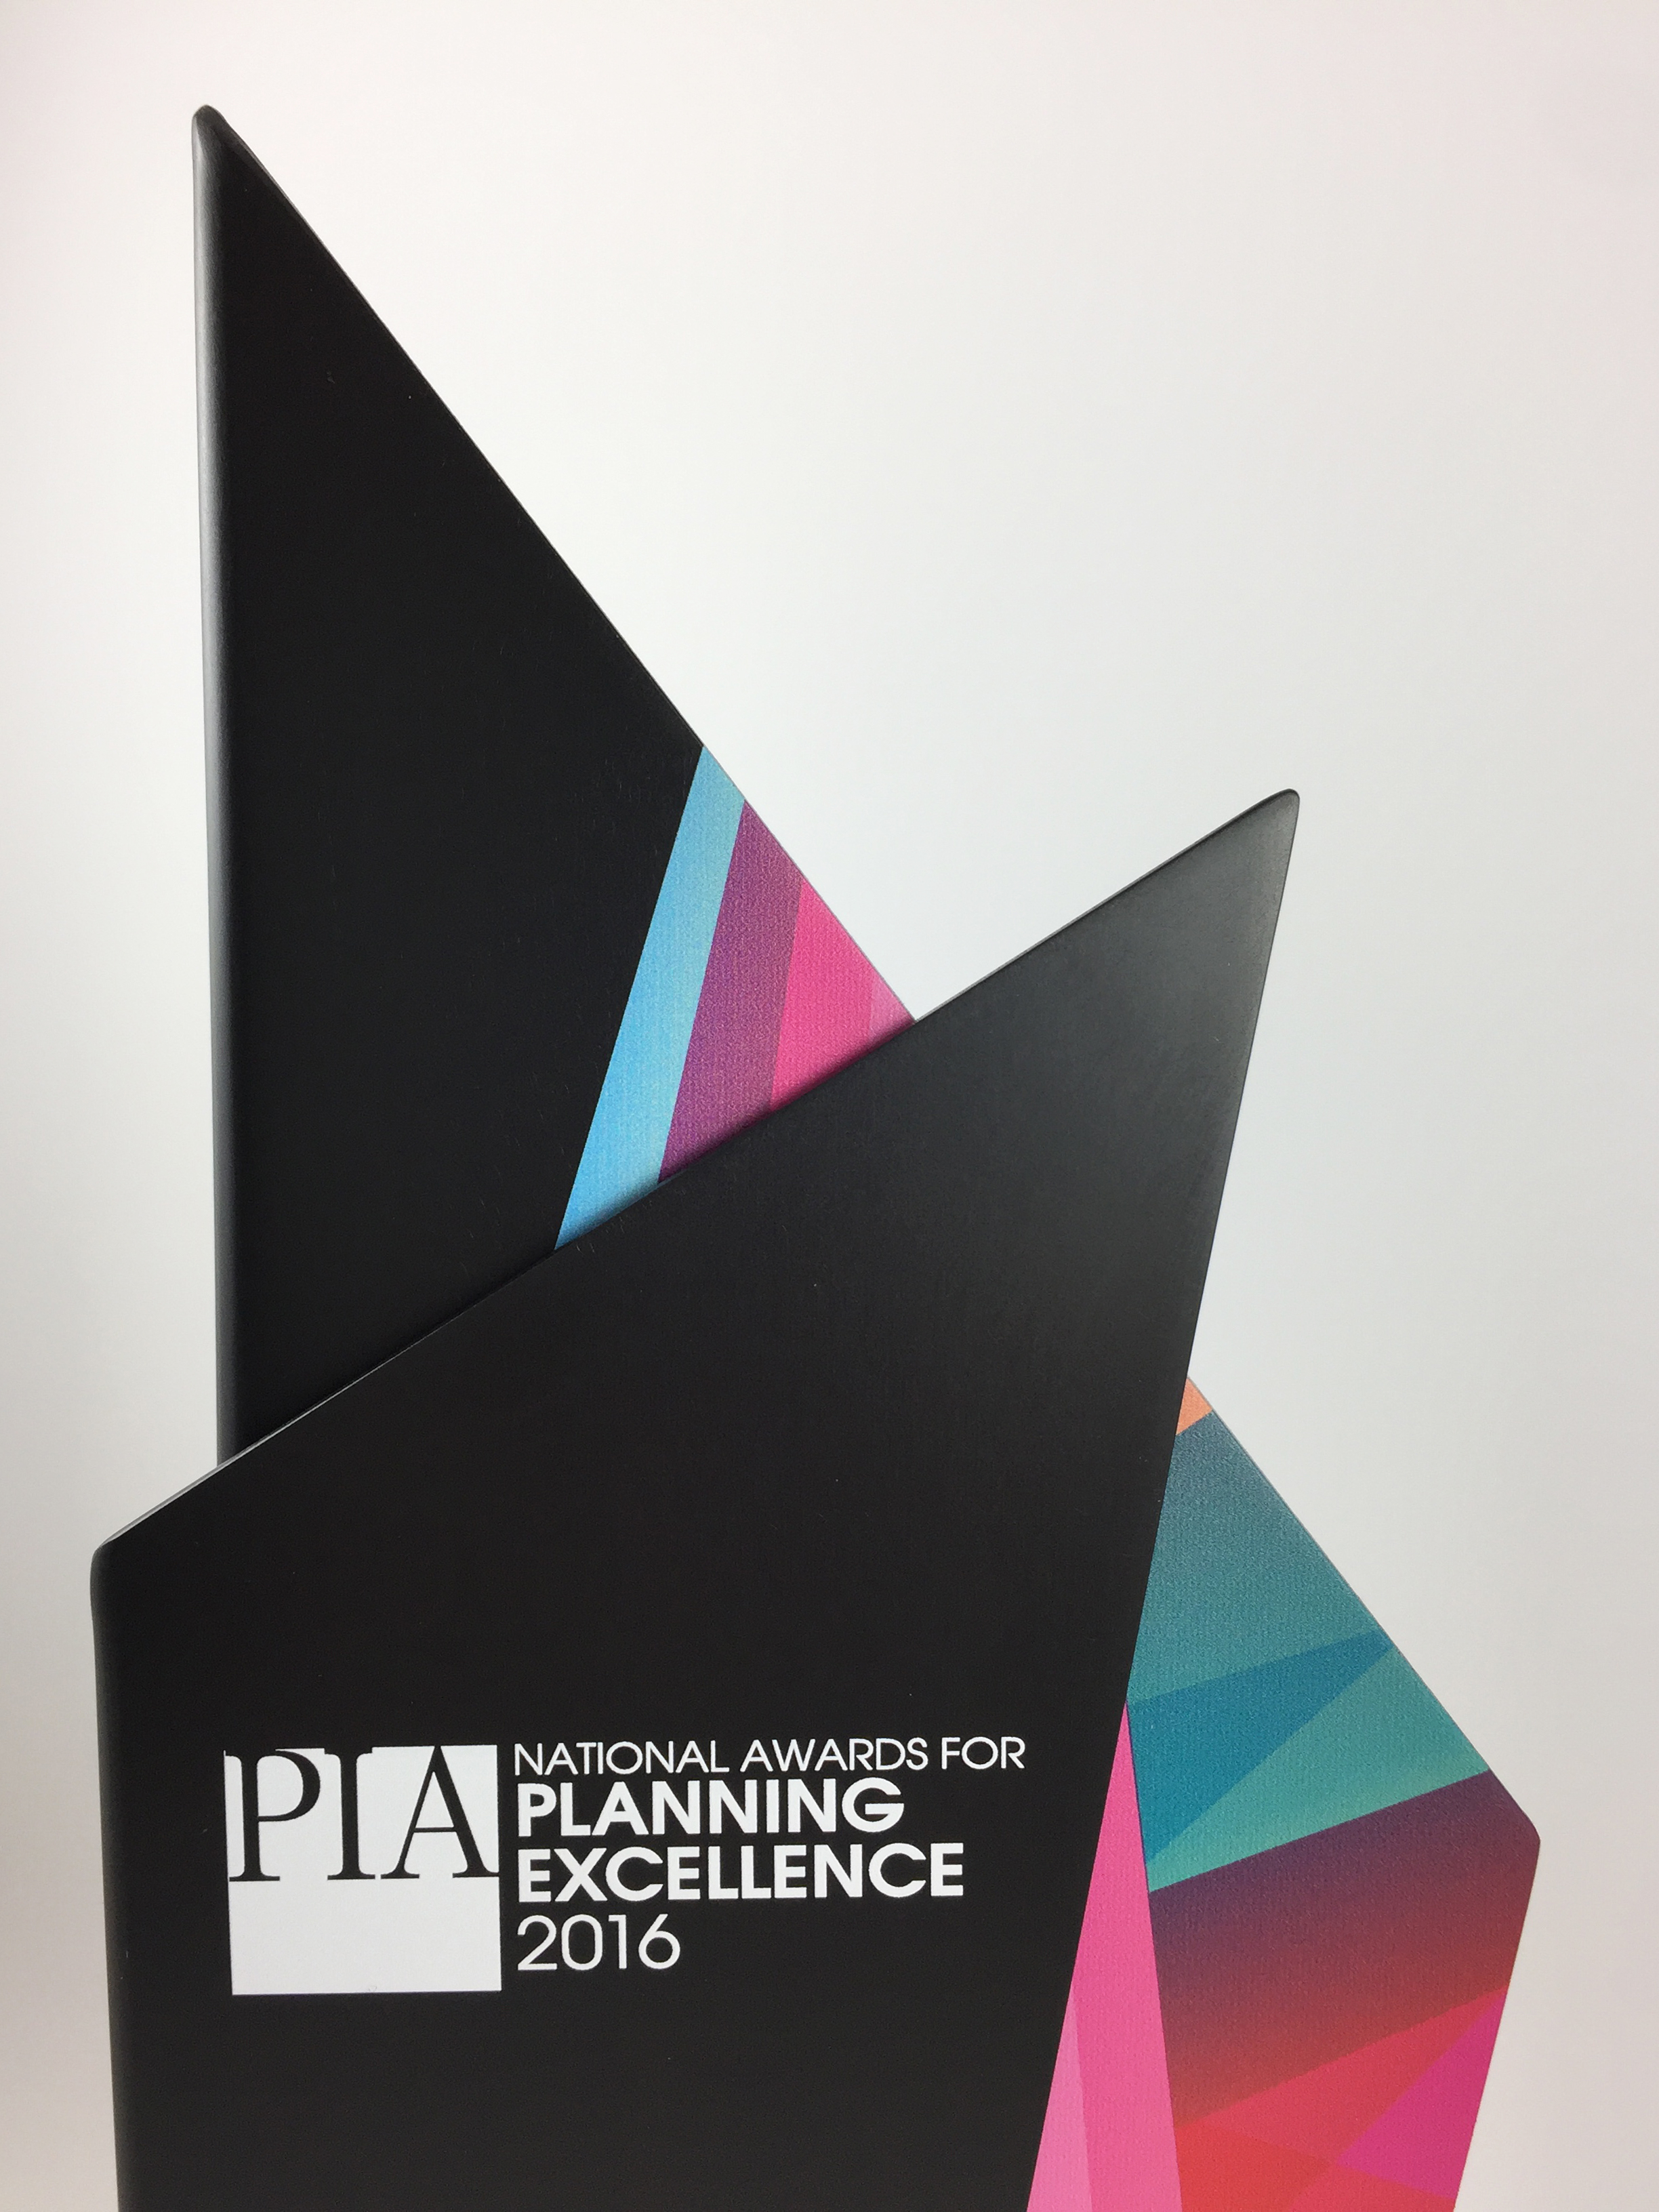 Planning-Institute-Australia-award-aluminium-trophy-03.jpg